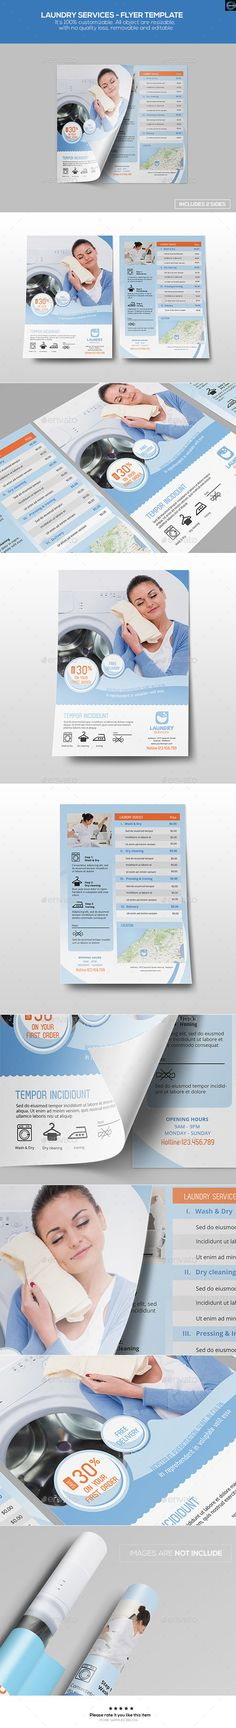 Laundry Services Flyer Template #design Download: http://graphicriver.net/item/laundry-services-flyer-template/12597923?ref=ksioks